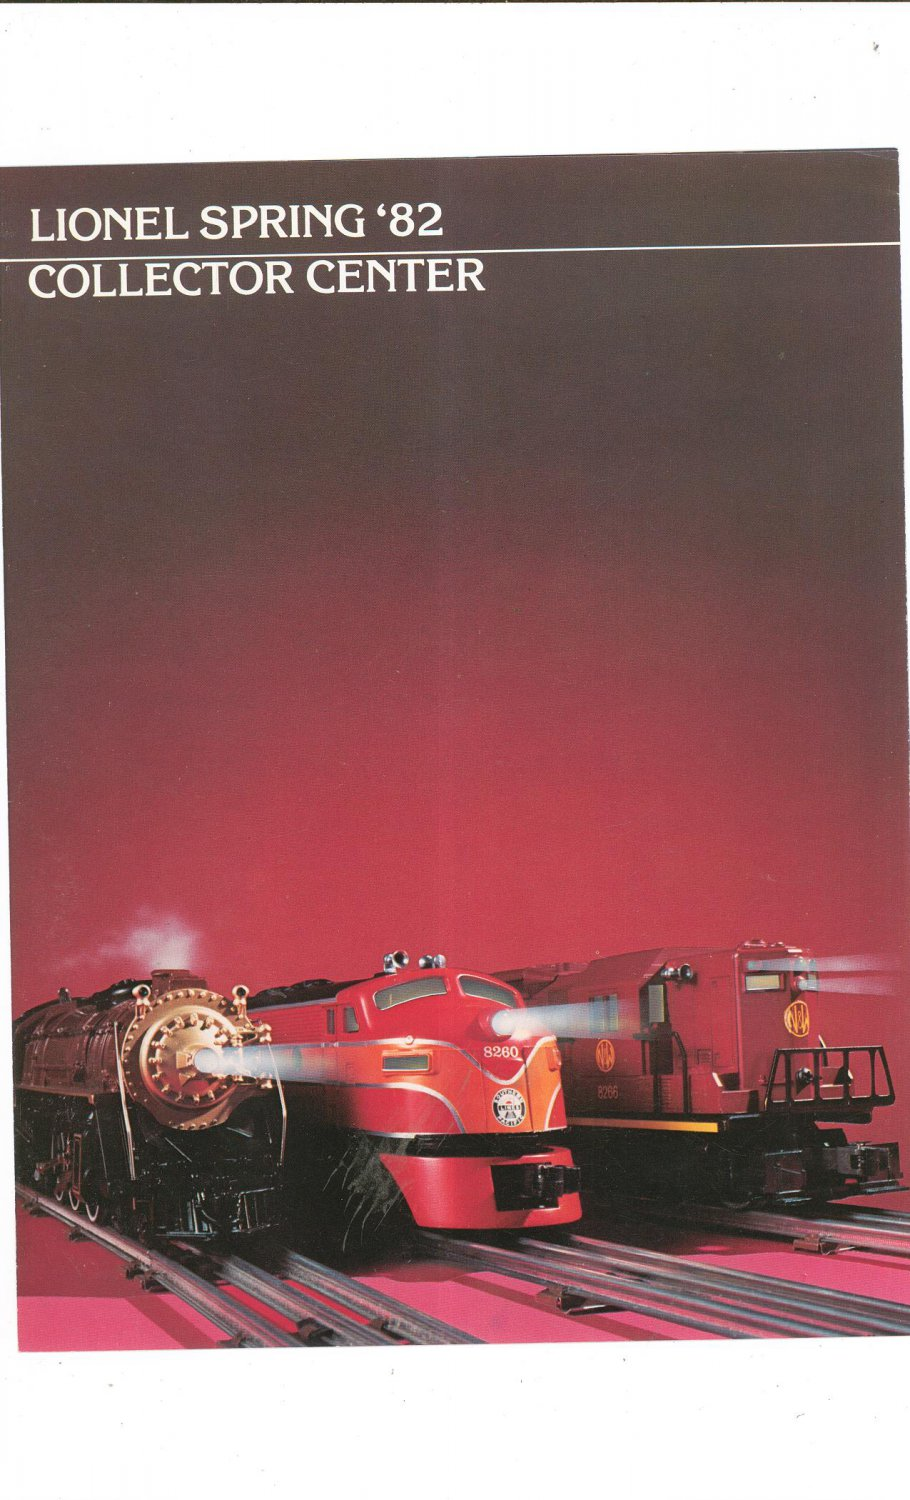 Vintage Lionel 1982 Spring Collector Center Trains Brochure Not PDF Free Shipping Offer